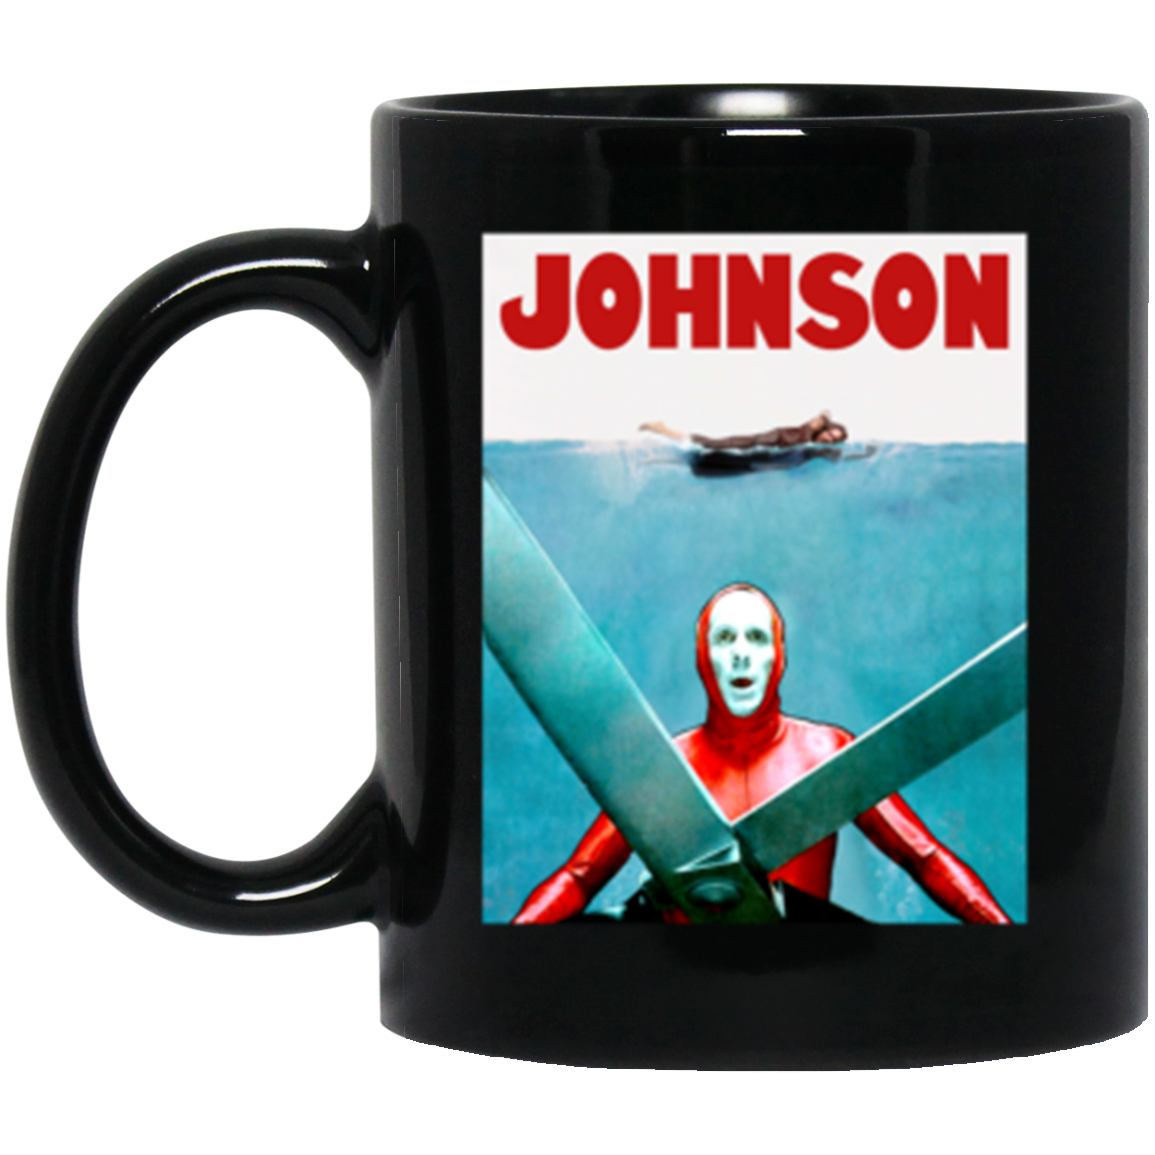 Drinkware - JAWS JOHNSON Black Mug 11oz (2-sided)